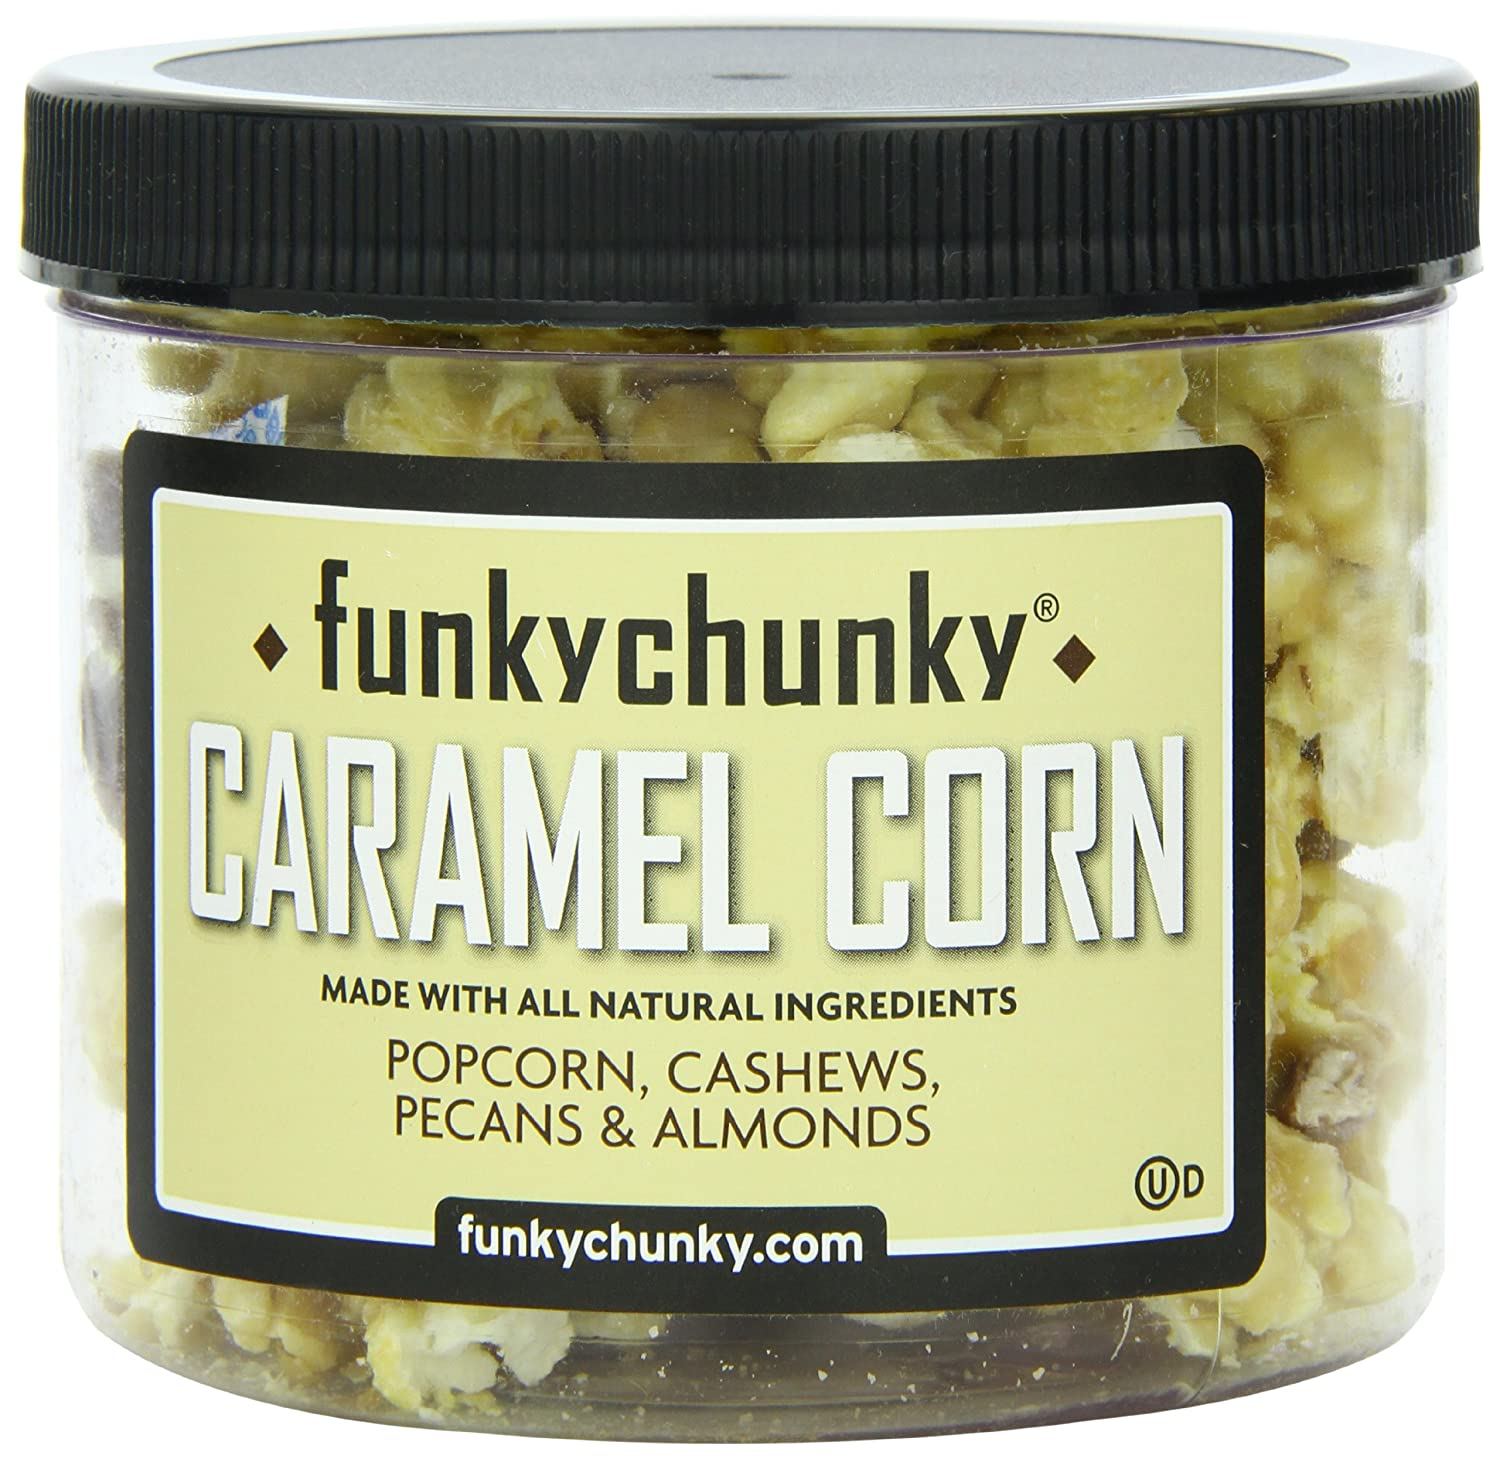 FunkyChunky Mini Caramel Corn, 6-Ounce Canisters (Pack of 2)